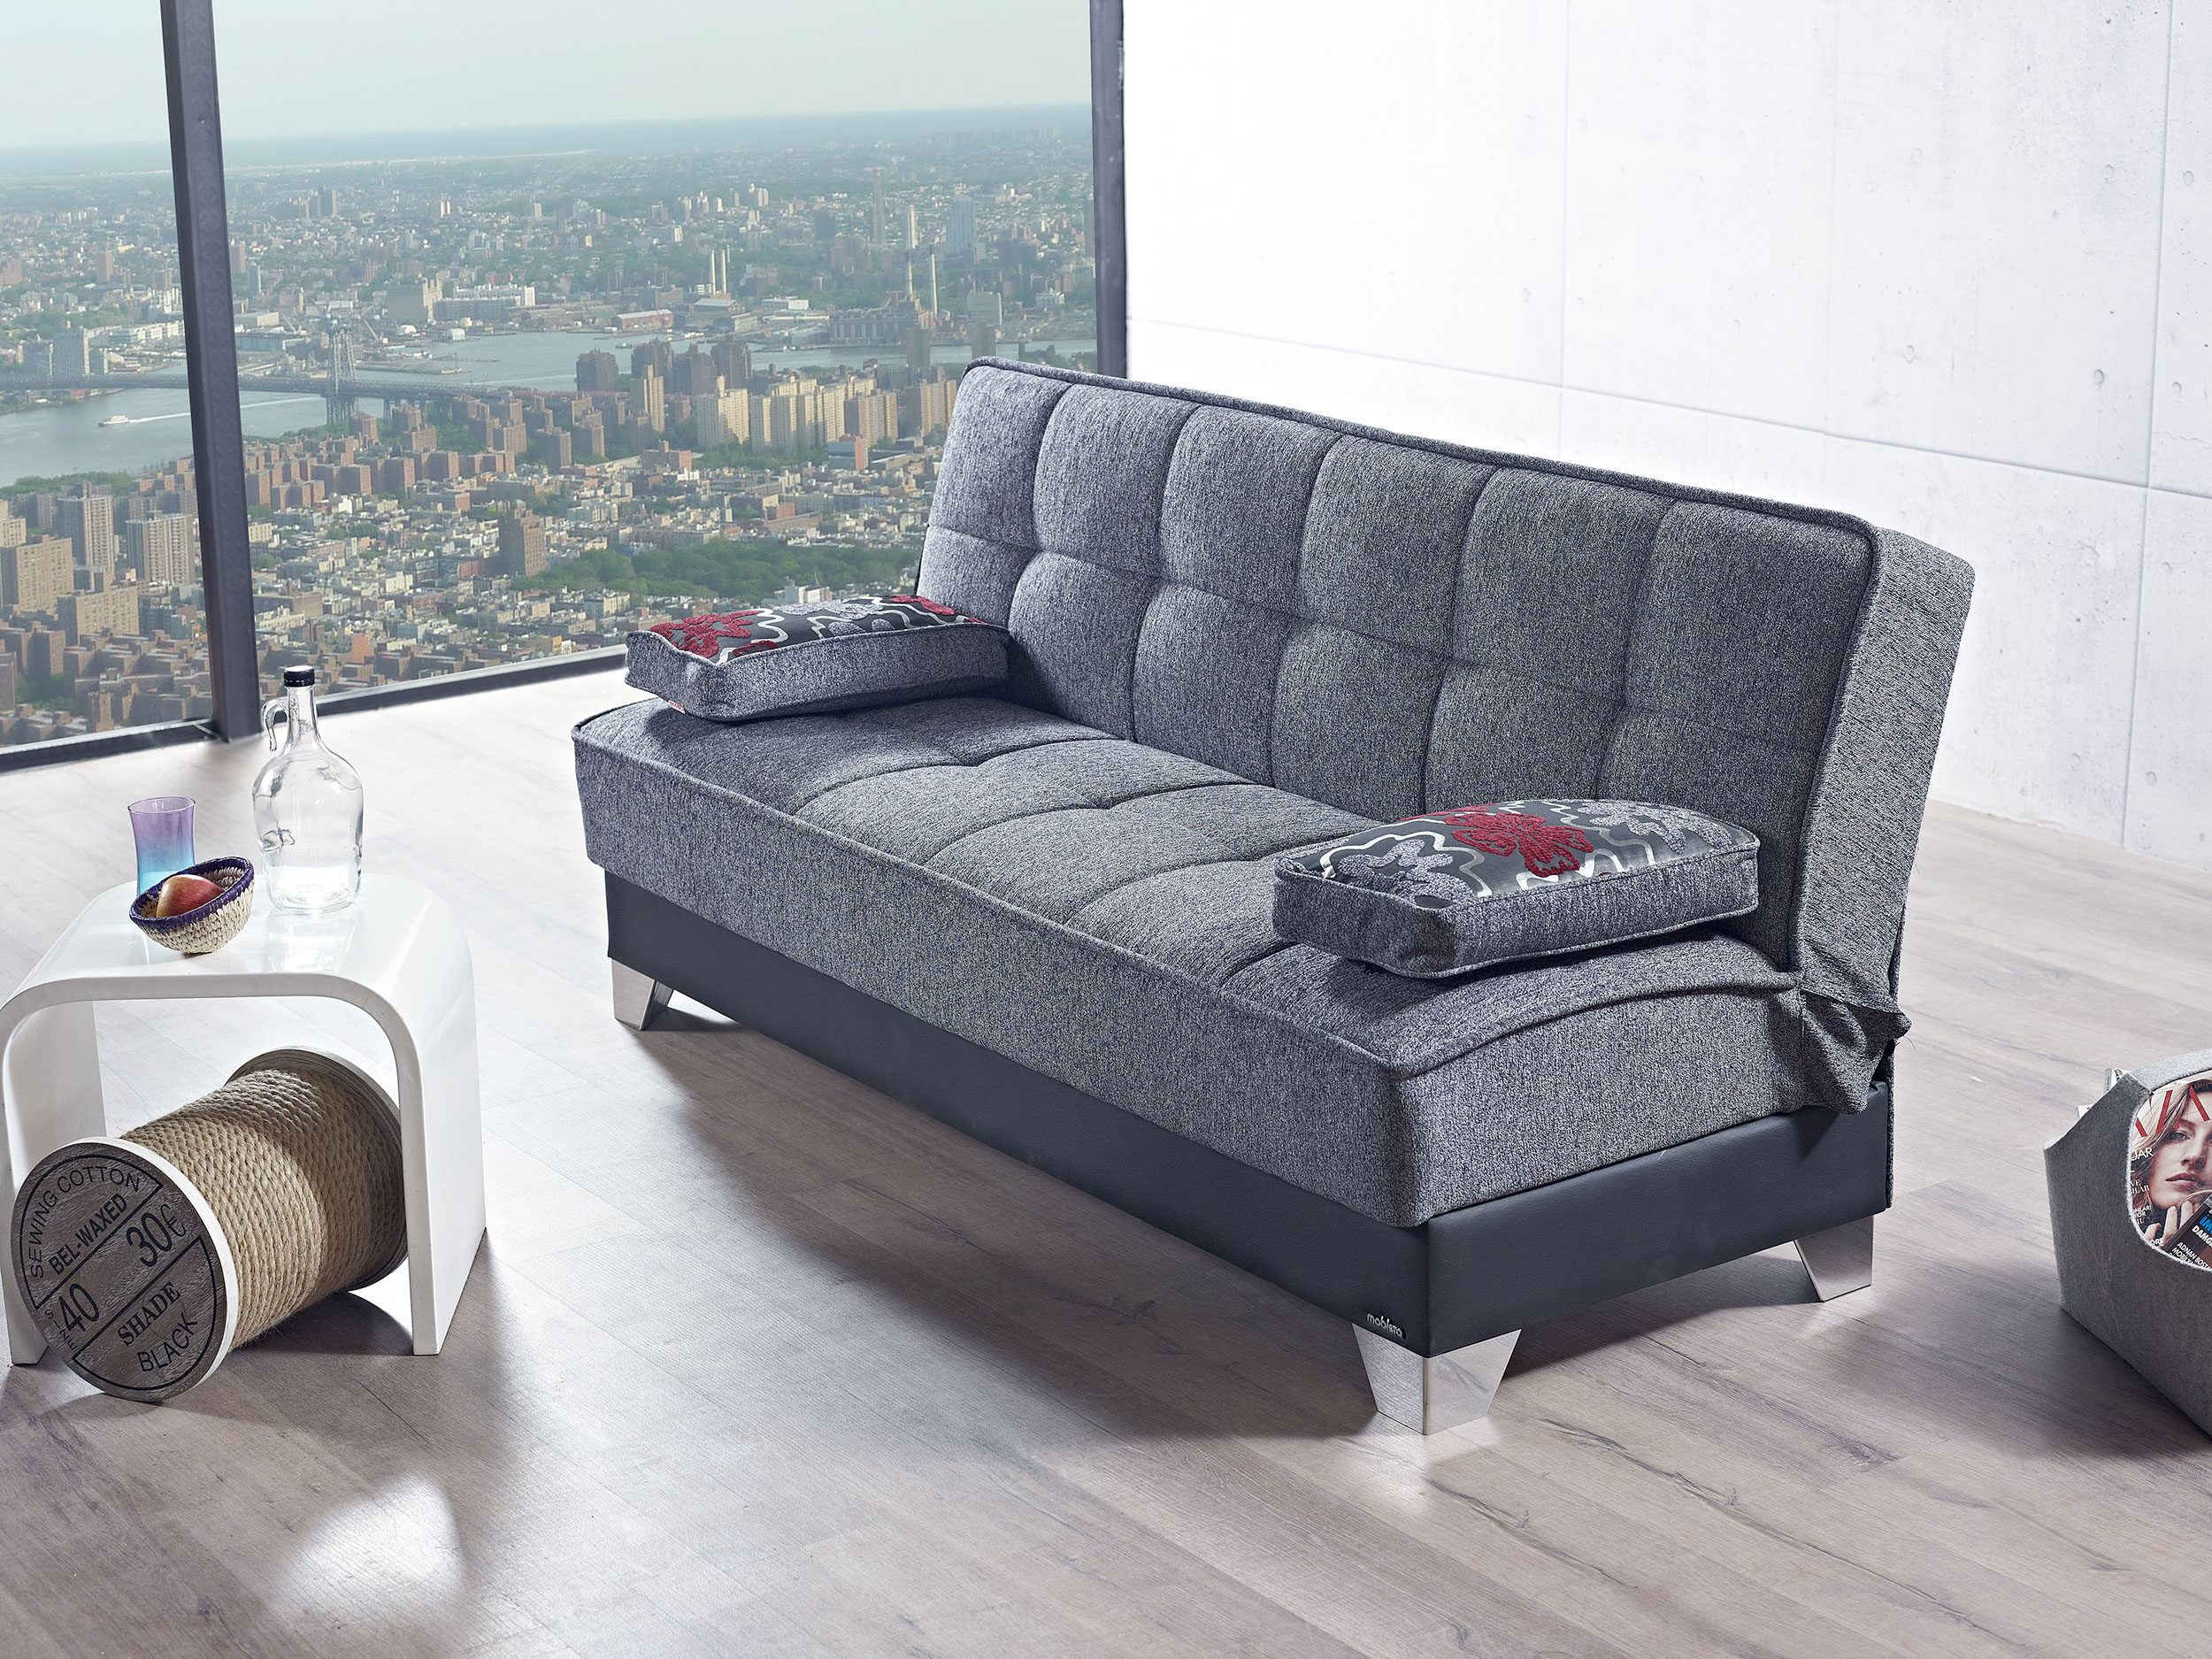 Inter Mebel Dulce Gray Sofa Bed by Mobista